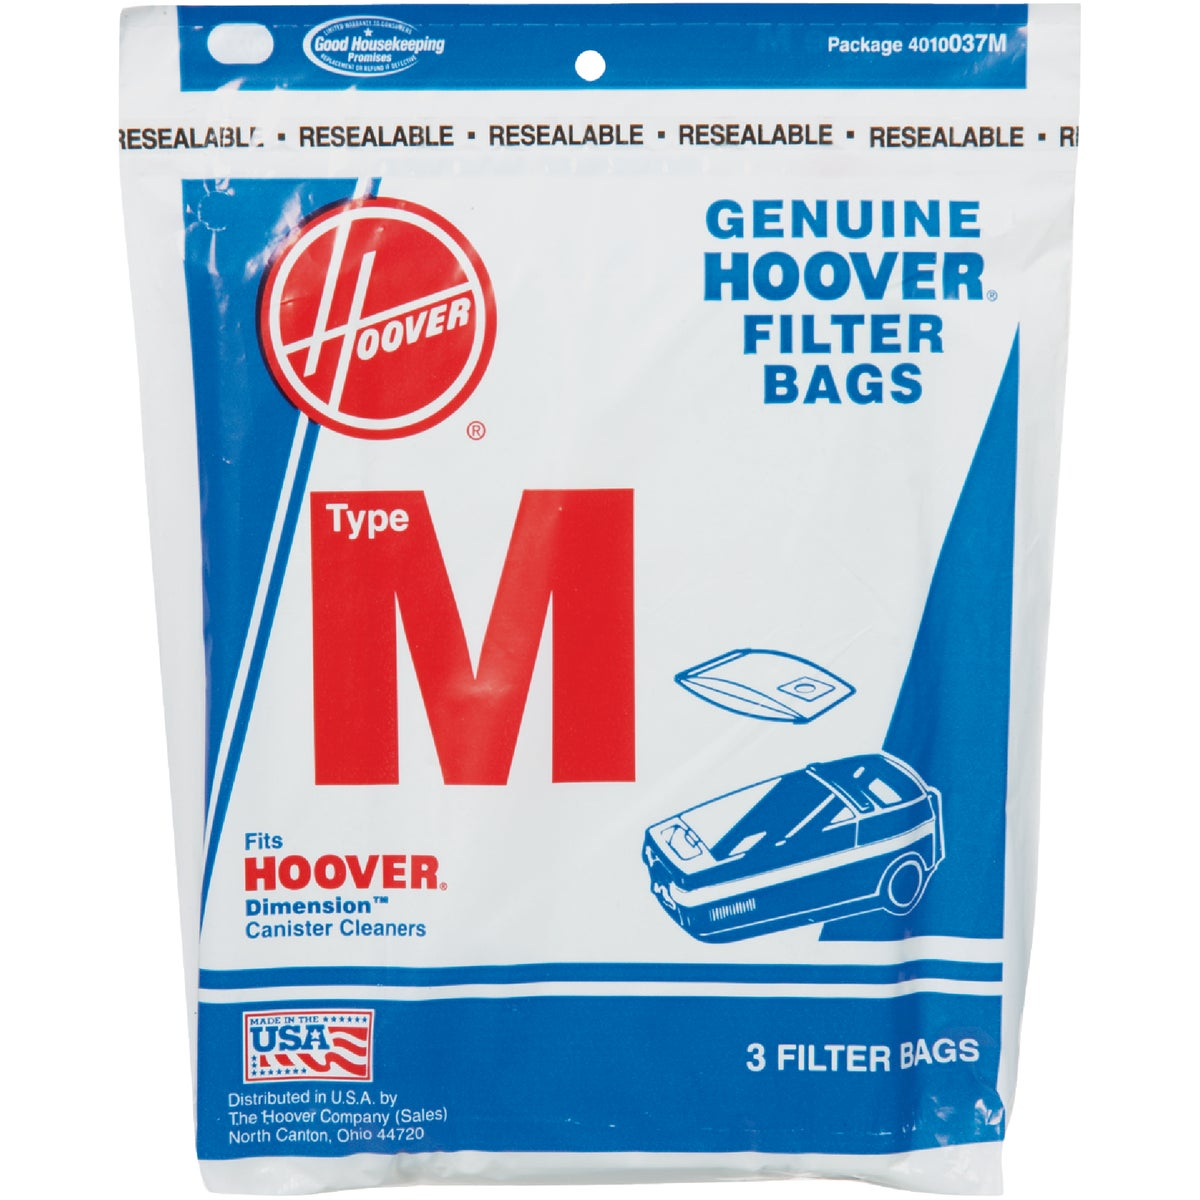 TYPE M VAC CLEANER BAG